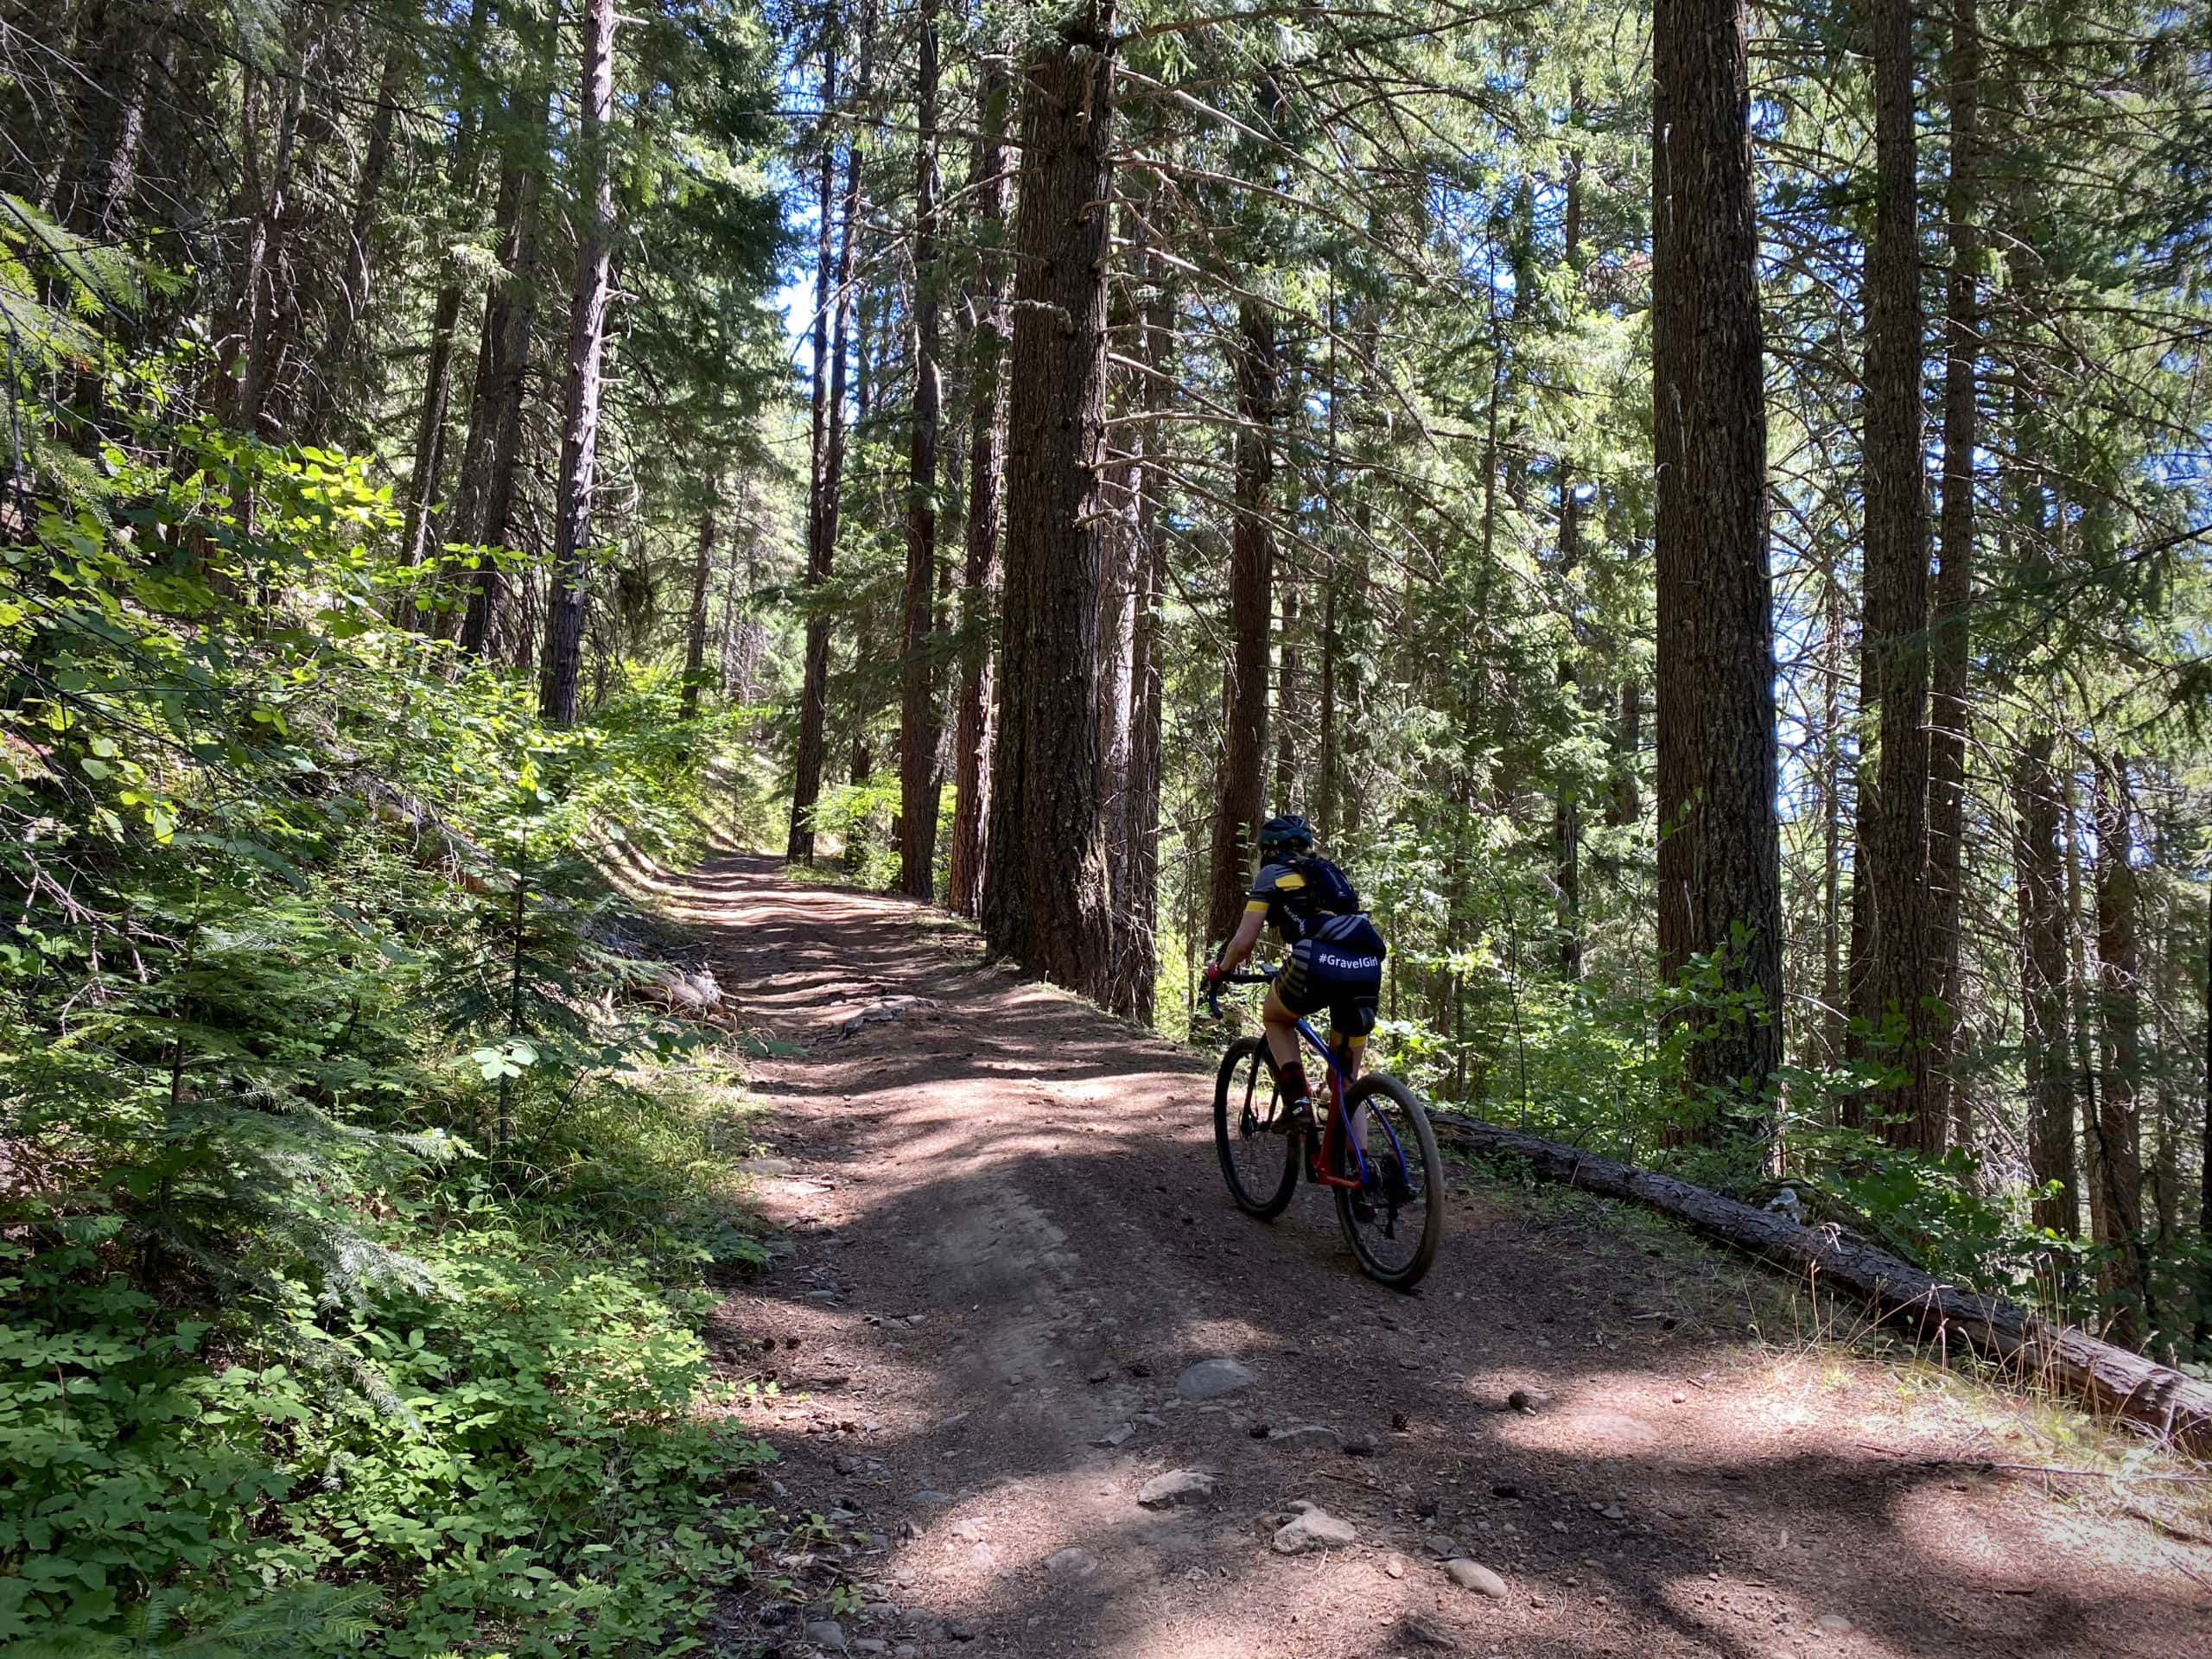 Gravel cyclist on dirt road near Keeps Mill campground in Oregon.